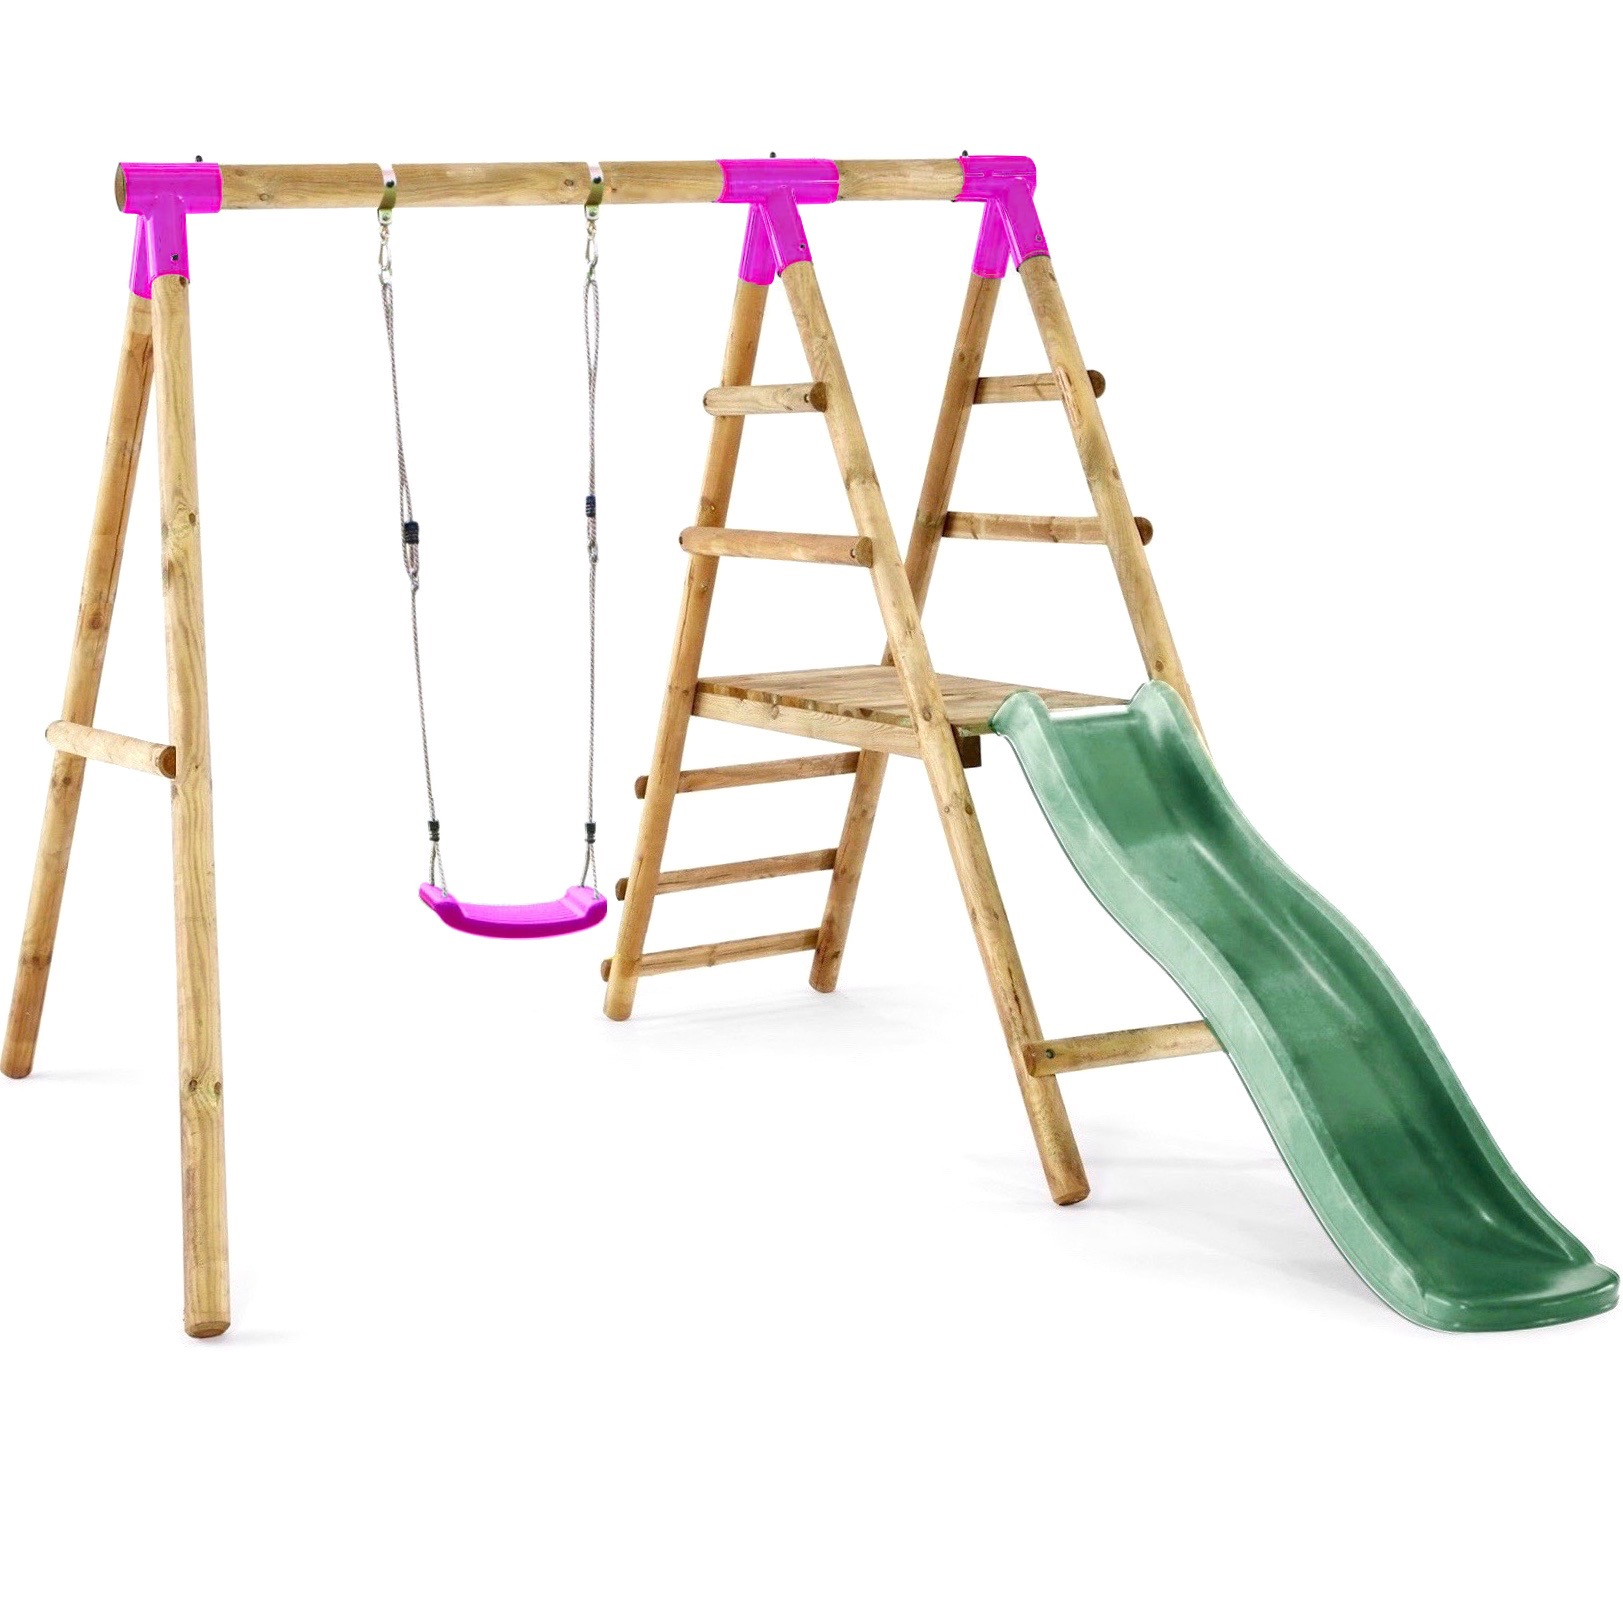 Details About Rebo Apollo Wooden Swing Set With Platform And Slide Pink